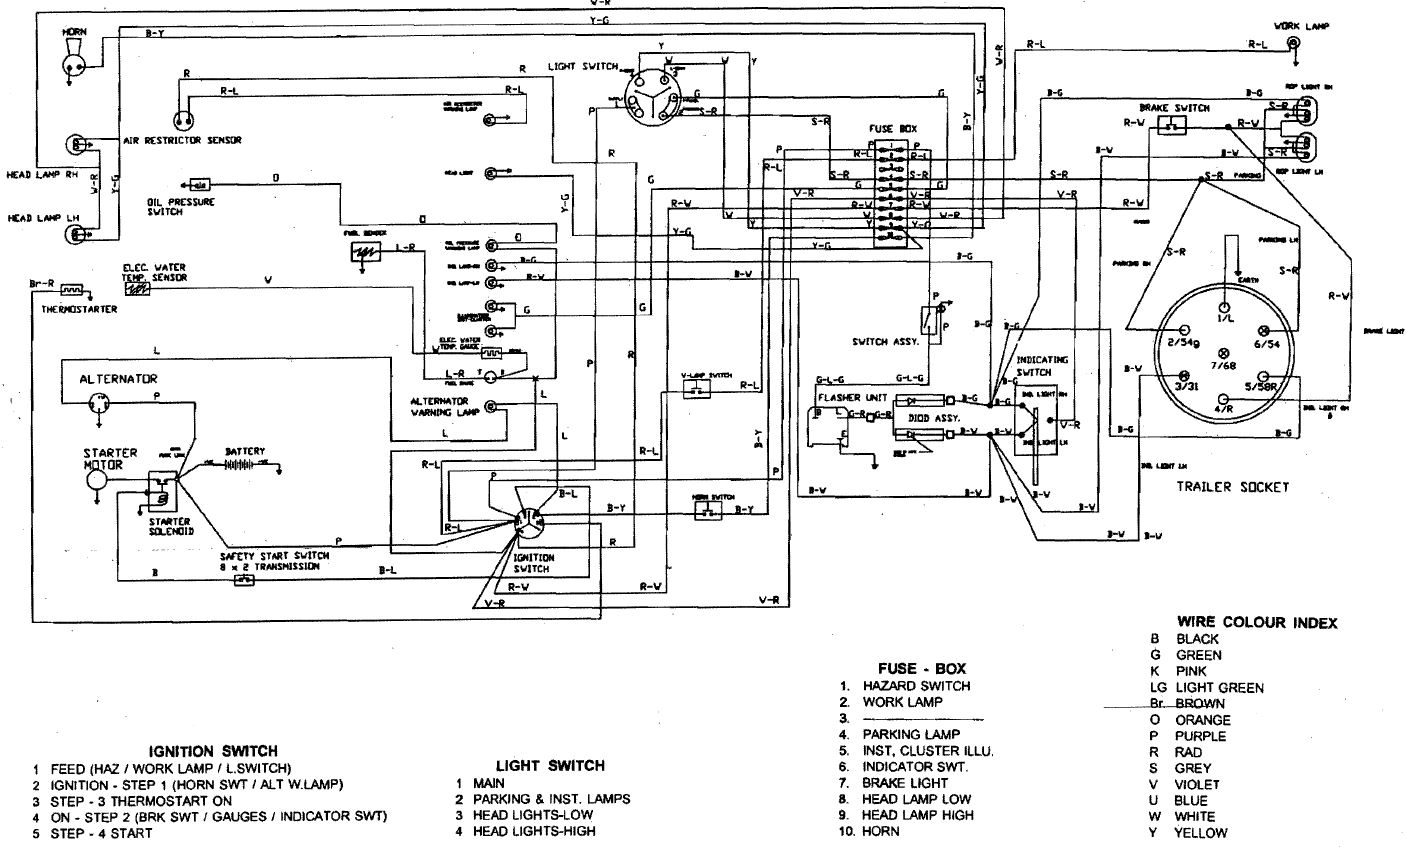 cat light wiring diagram layout wiring diagrams u2022 rh laurafinlay co uk  Caterpillar C15 Engine Diagram Caterpillar Diagram